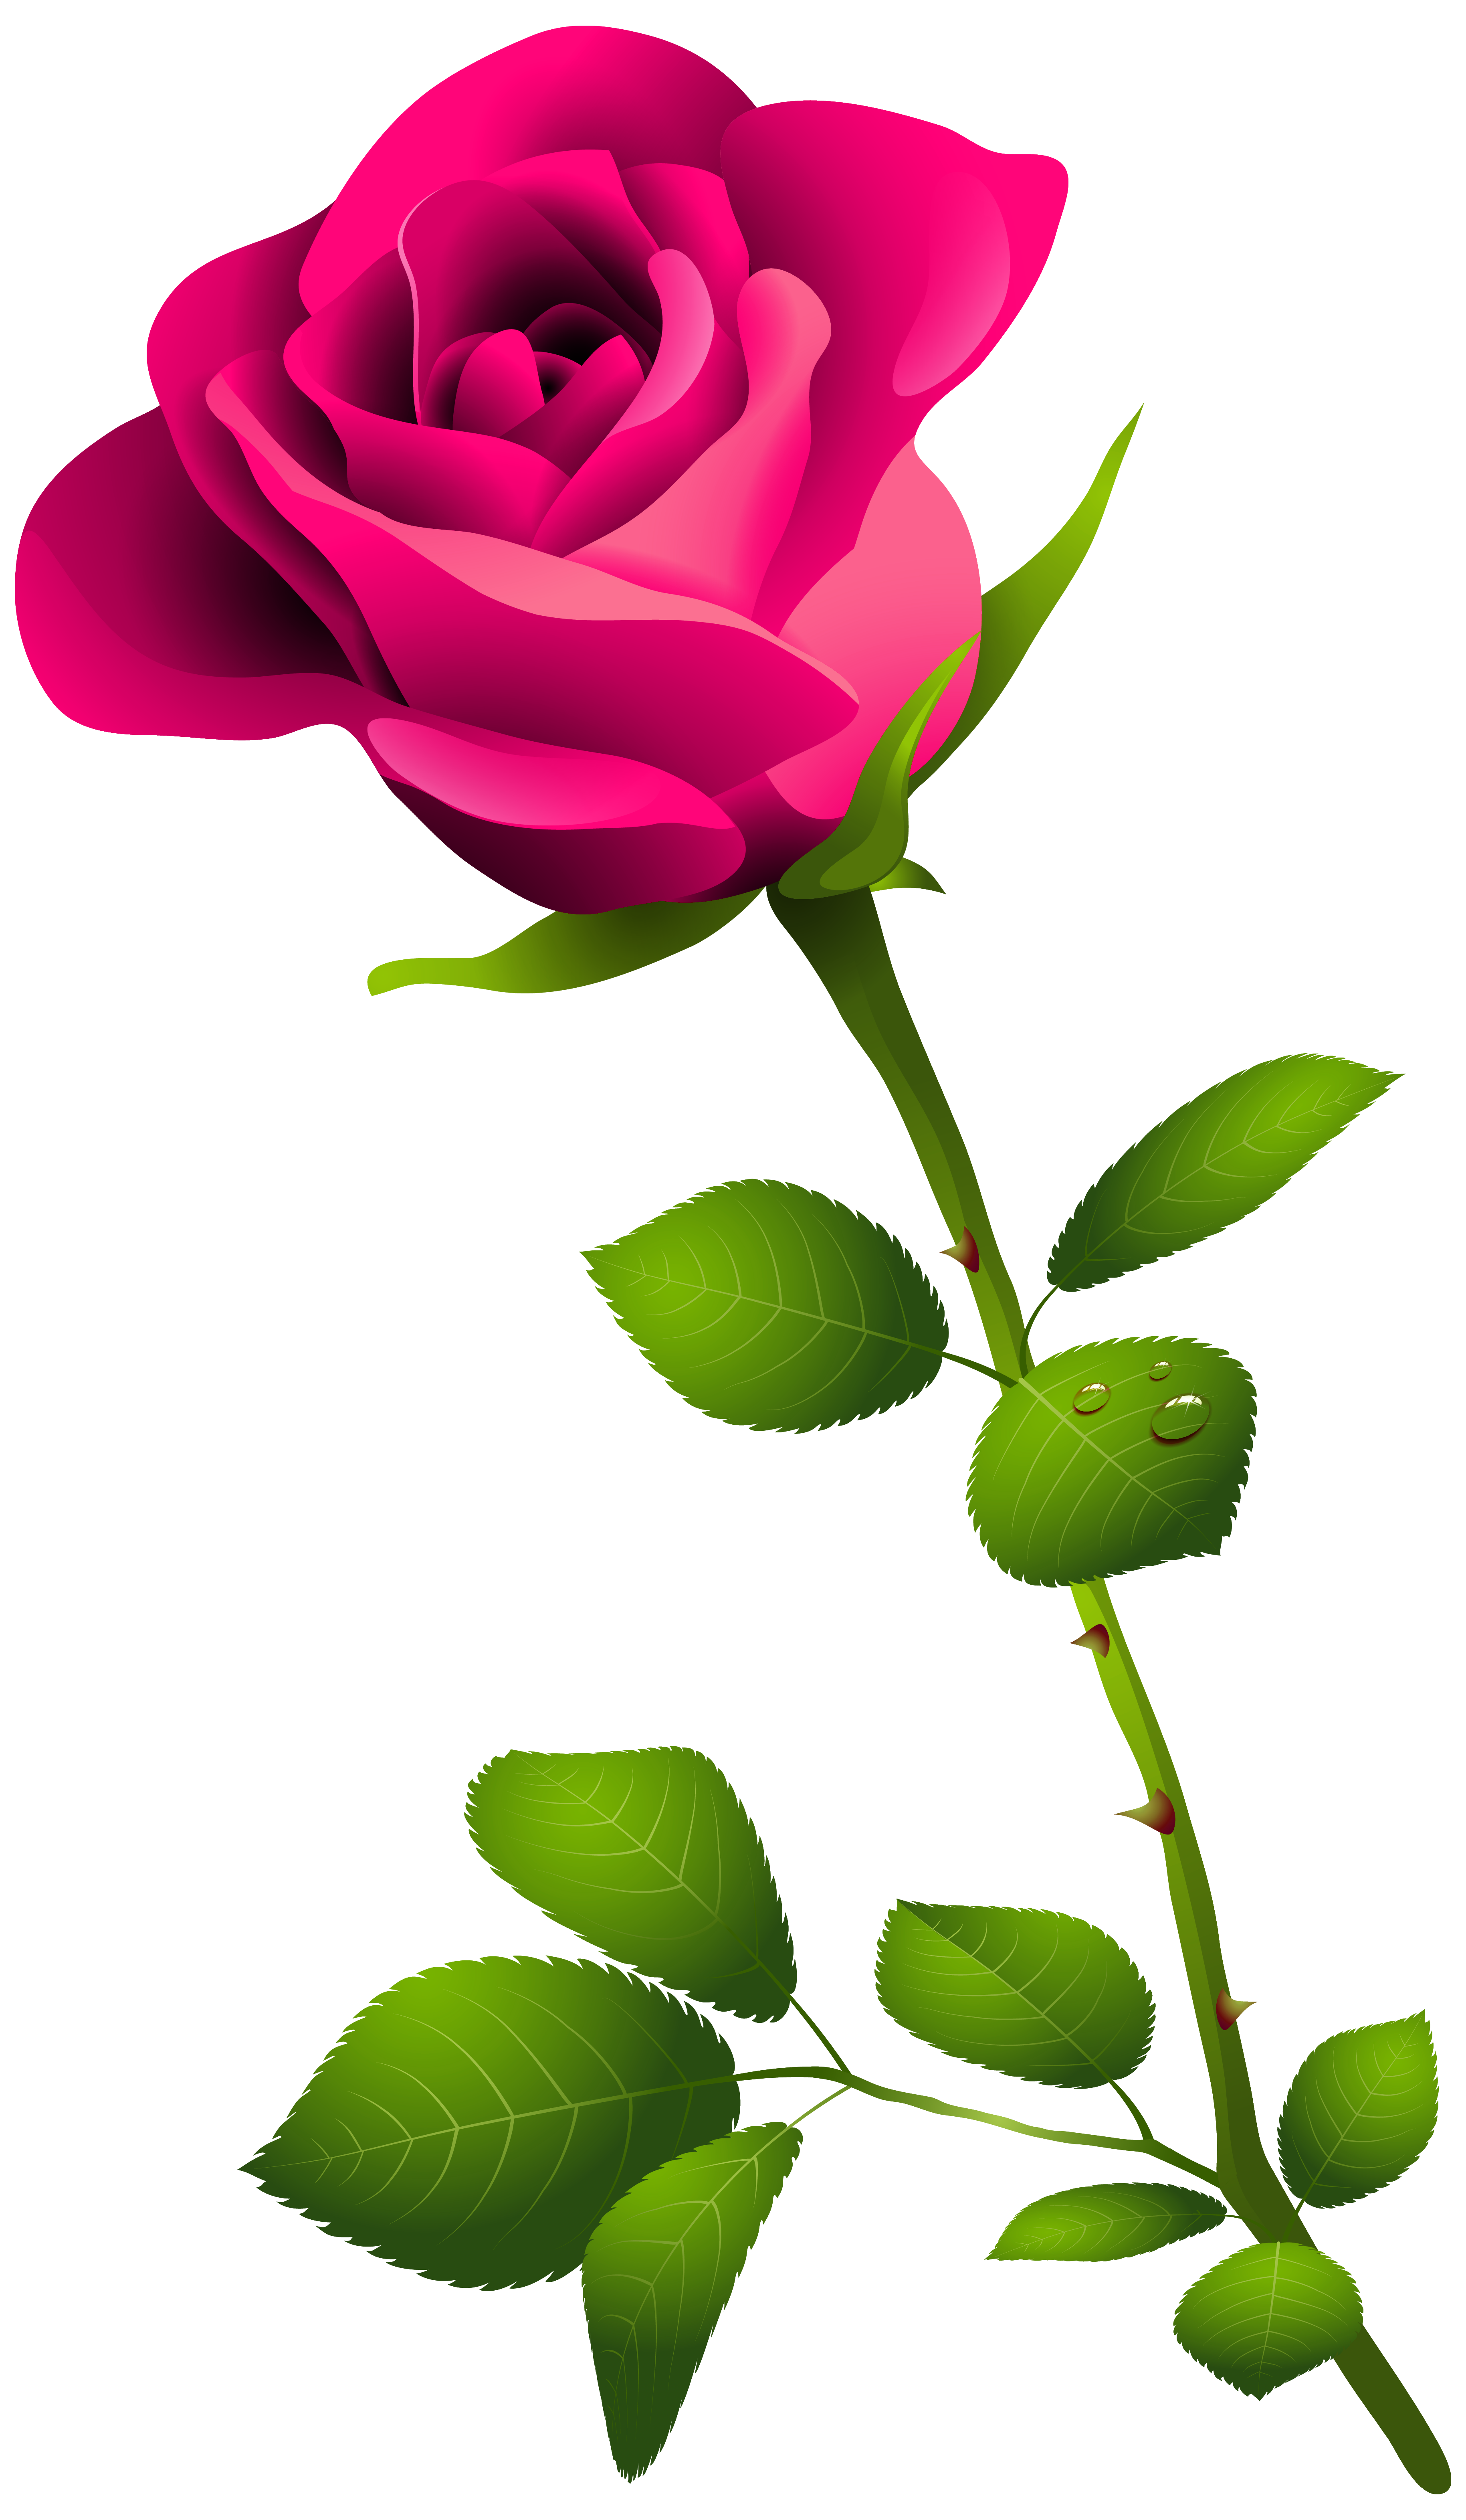 Pink Rose with Stem PNG Clipart Image.